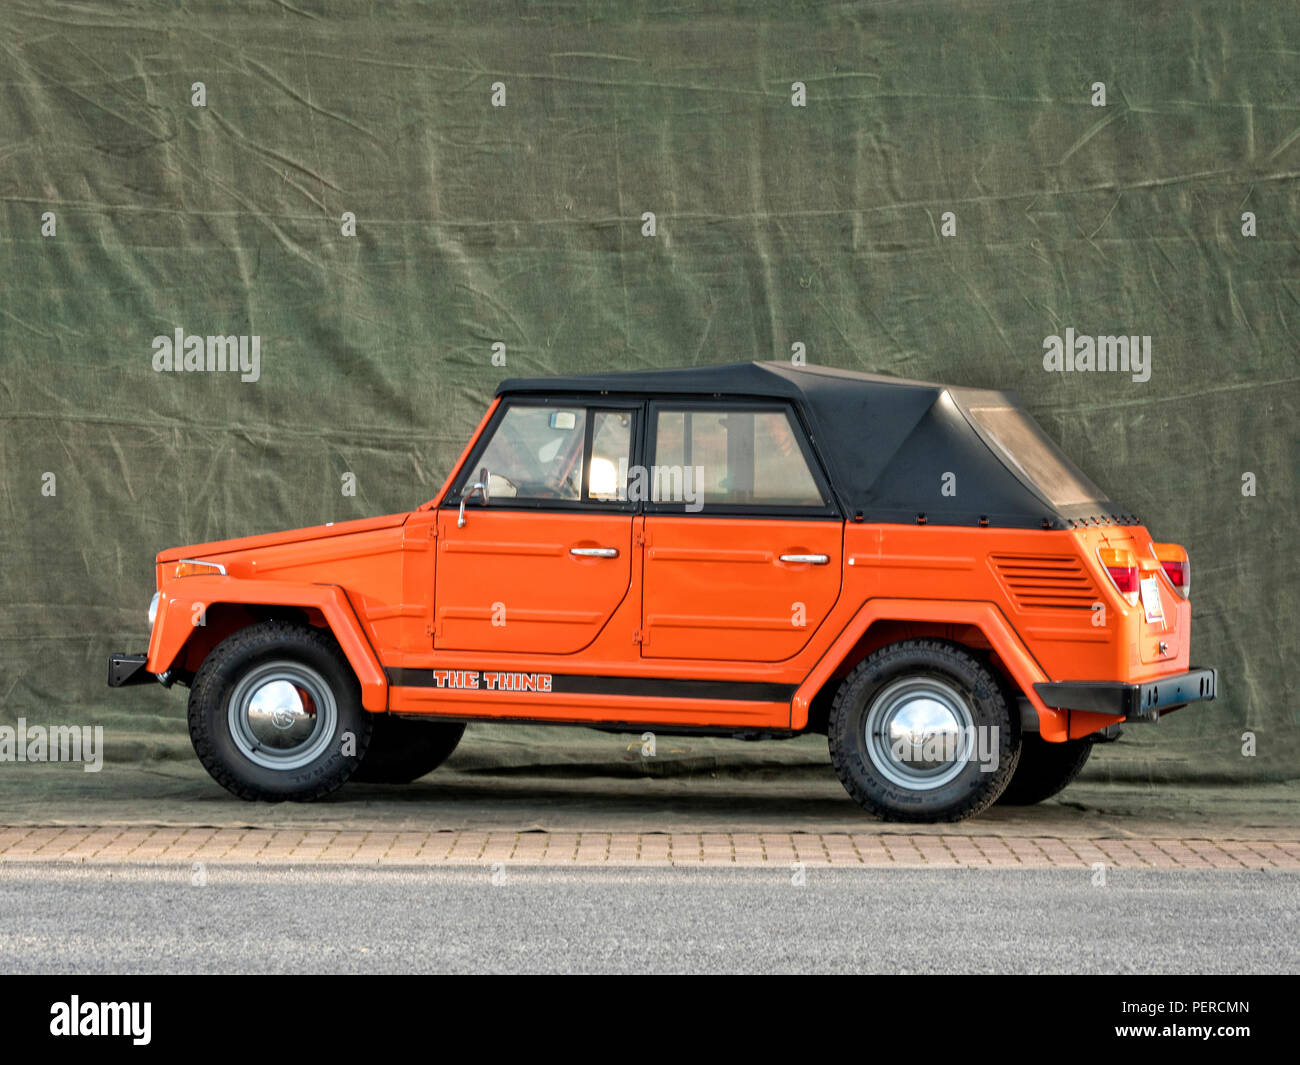 1973 VW The Thing - Stock Image